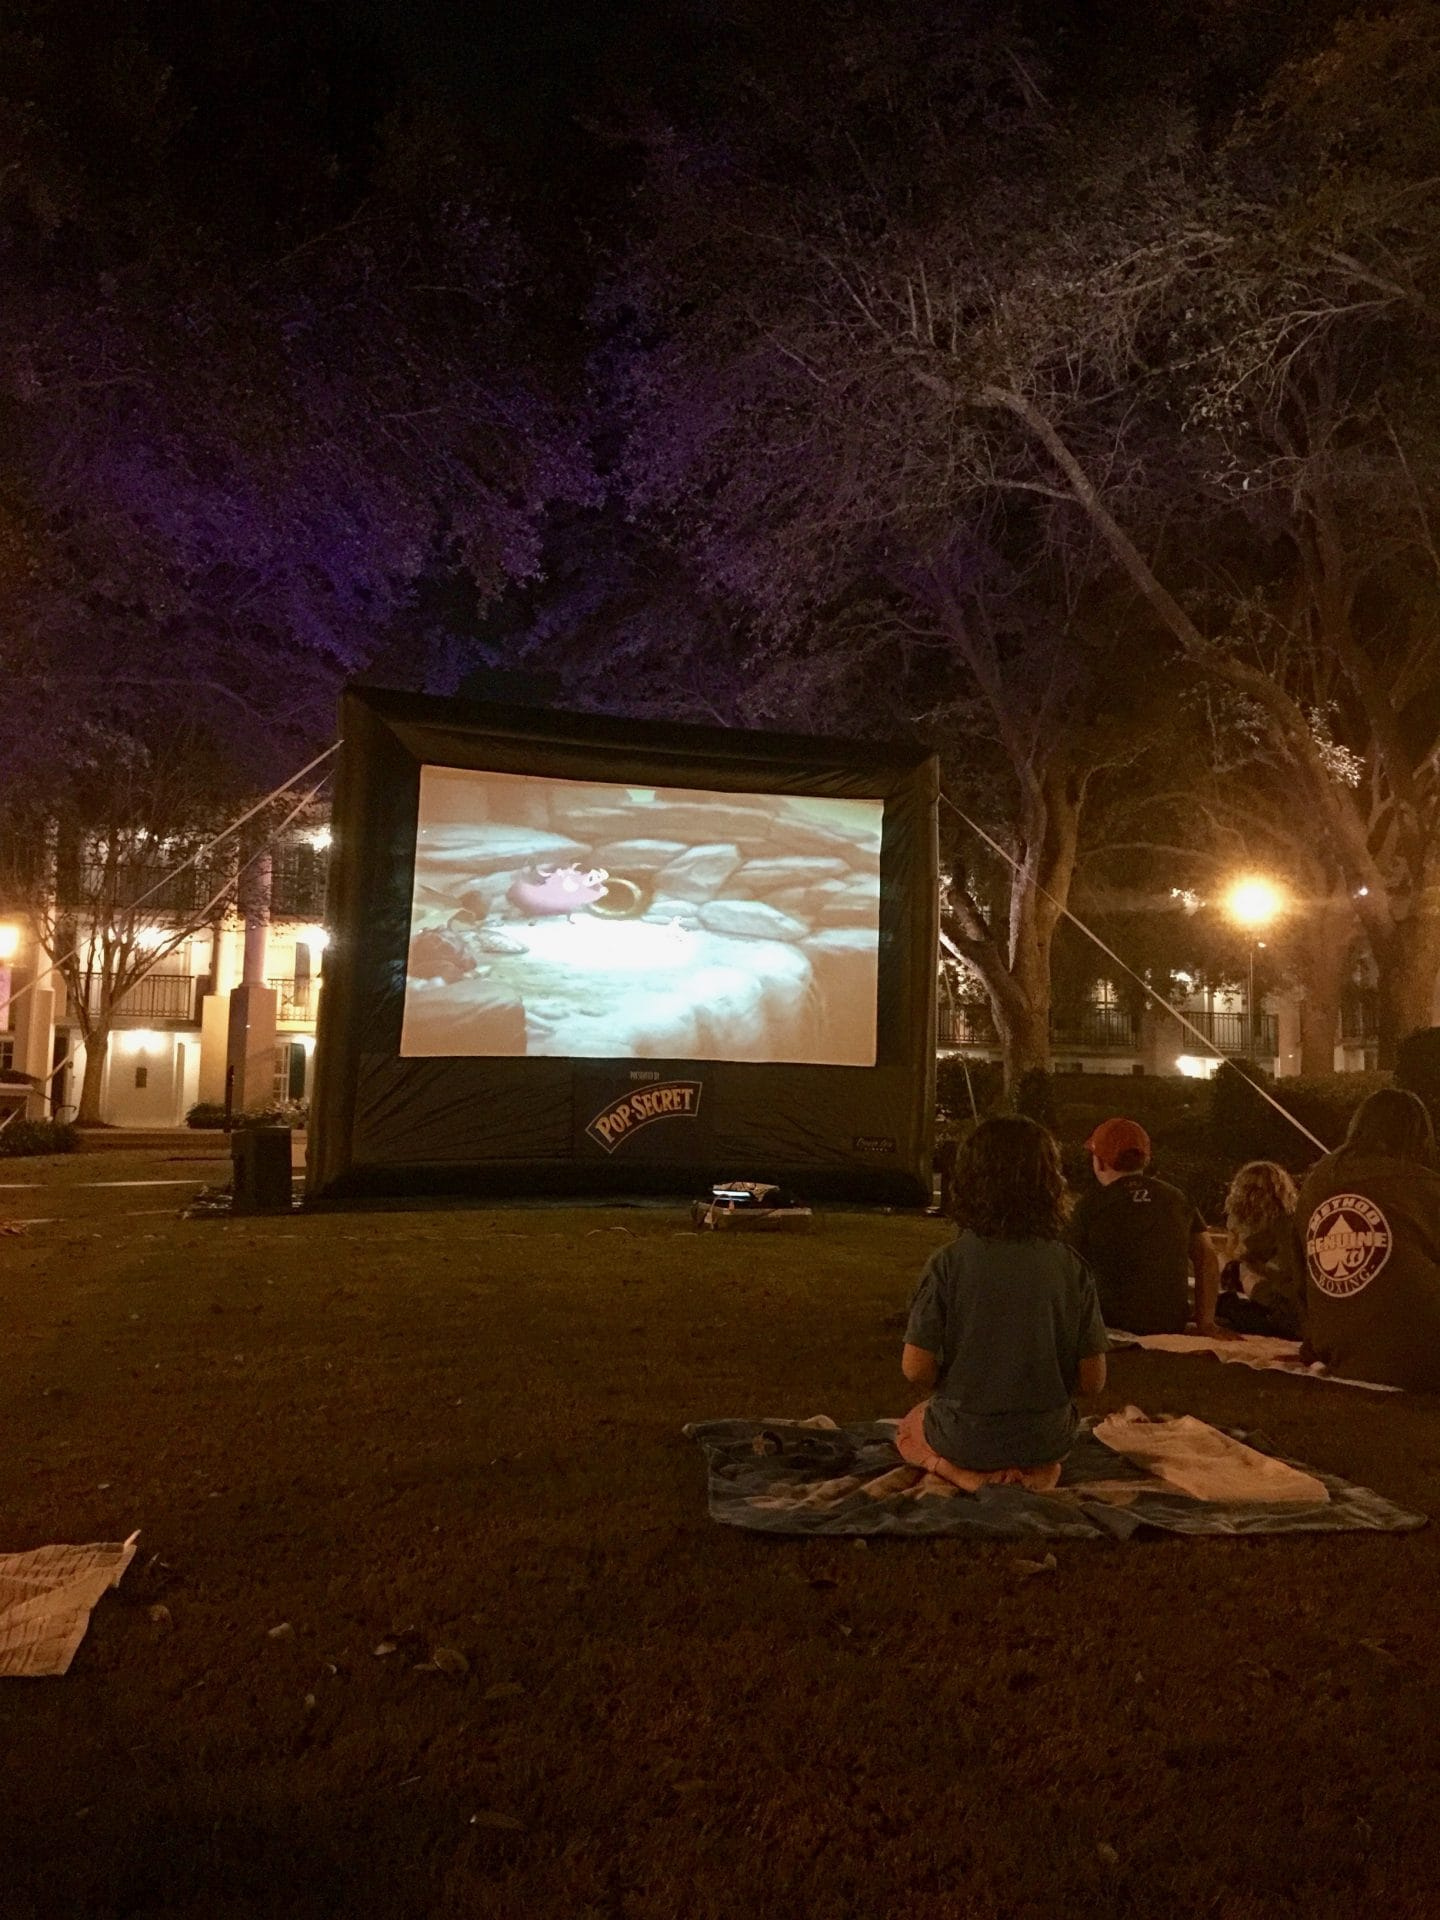 movie under the stars at Disney's port Orleans riverside